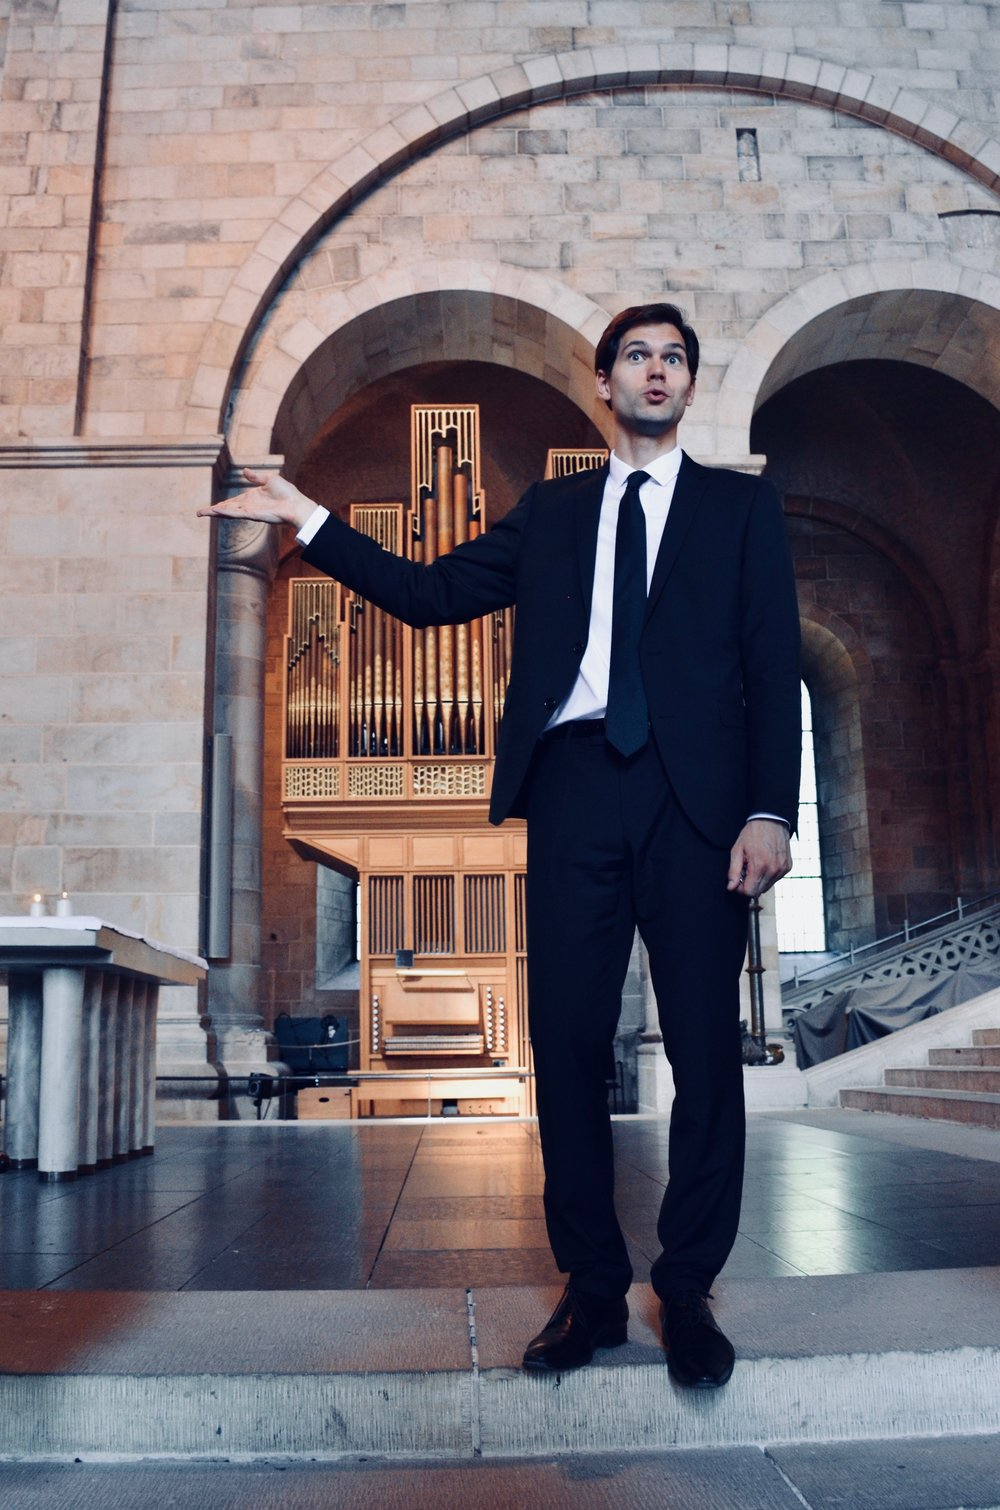 Robert Bennesh offers a tour of Lund Cathedral, with the choir organ behind.